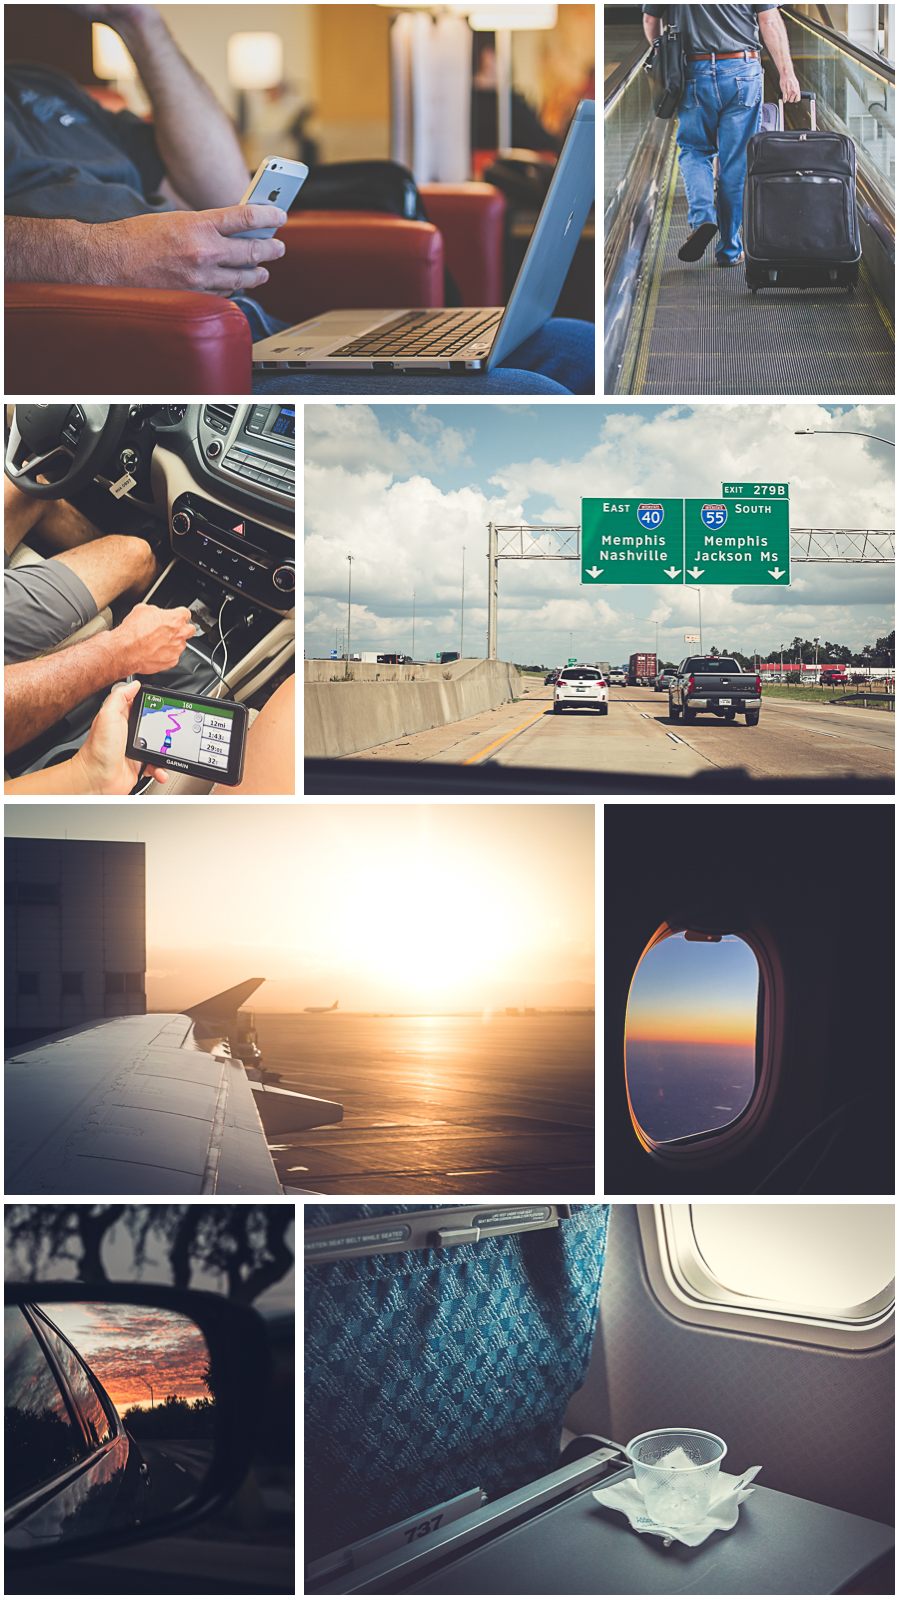 Travel Photography, Getting There